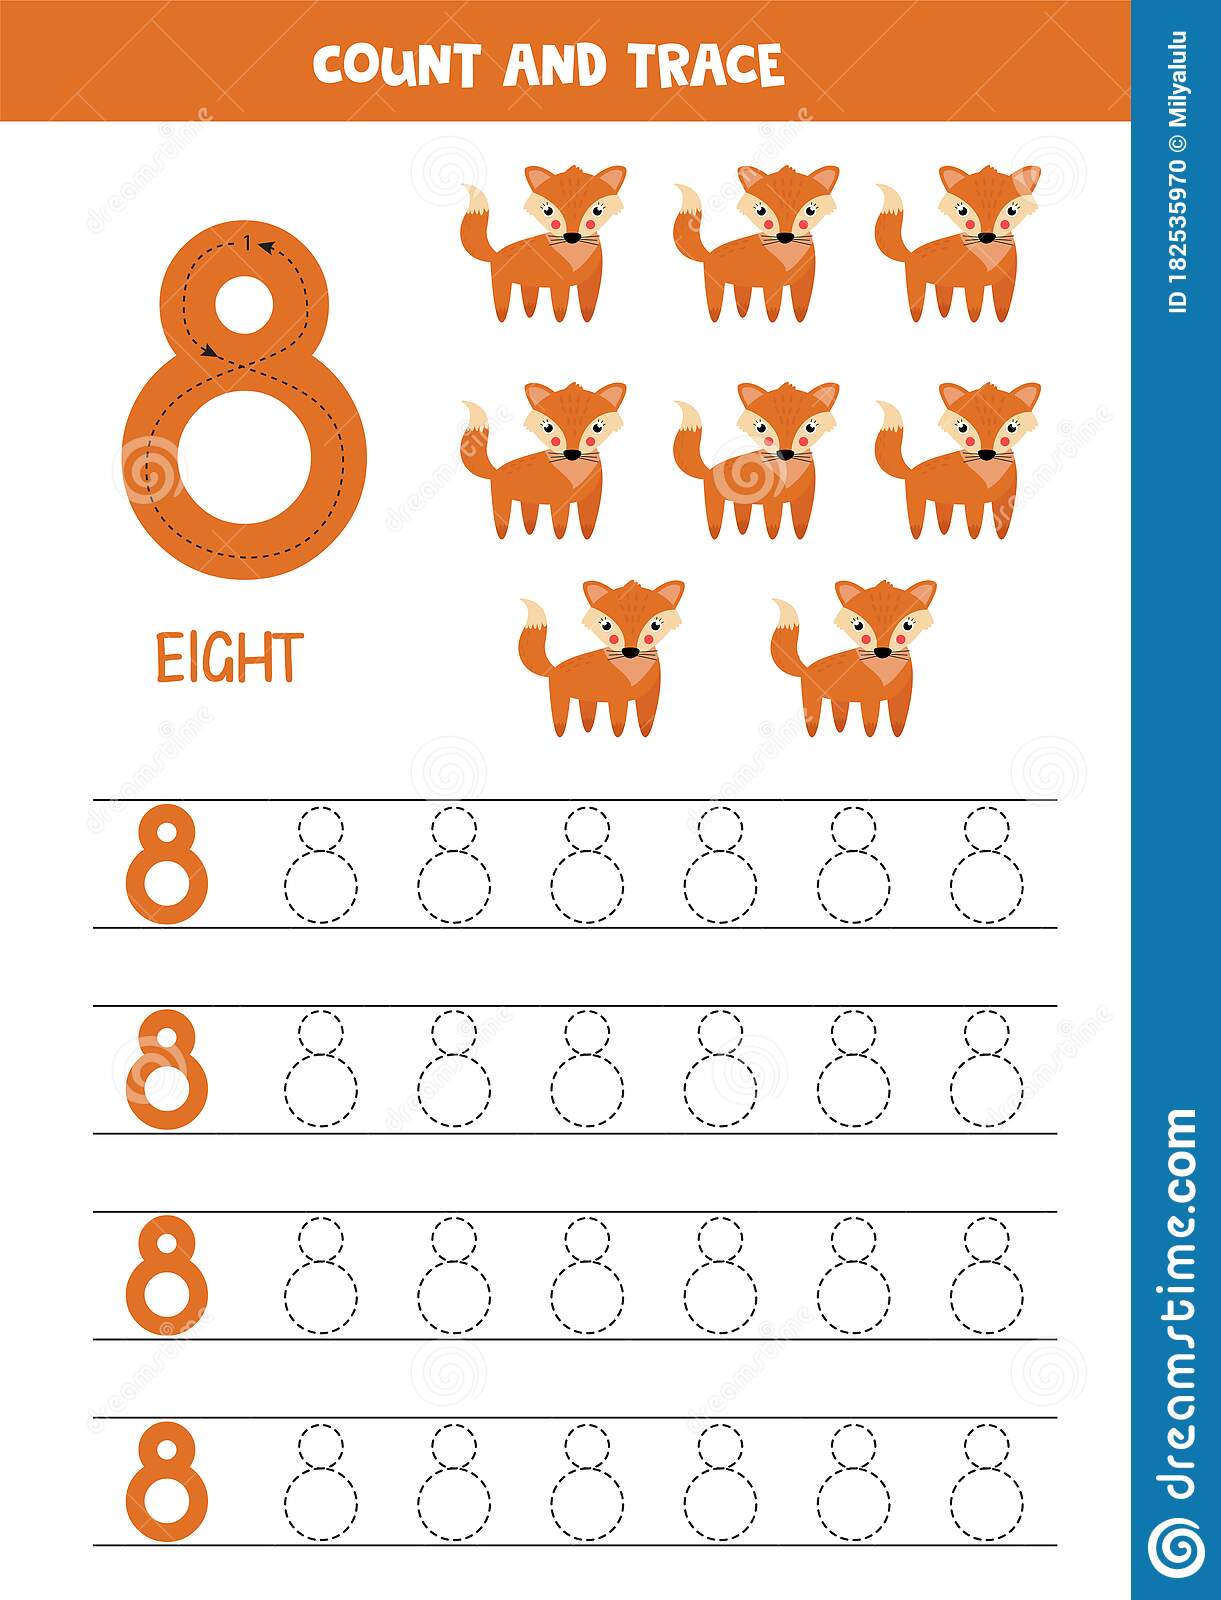 Worksheet For Learning Numbers With Cute Foxes Number 8